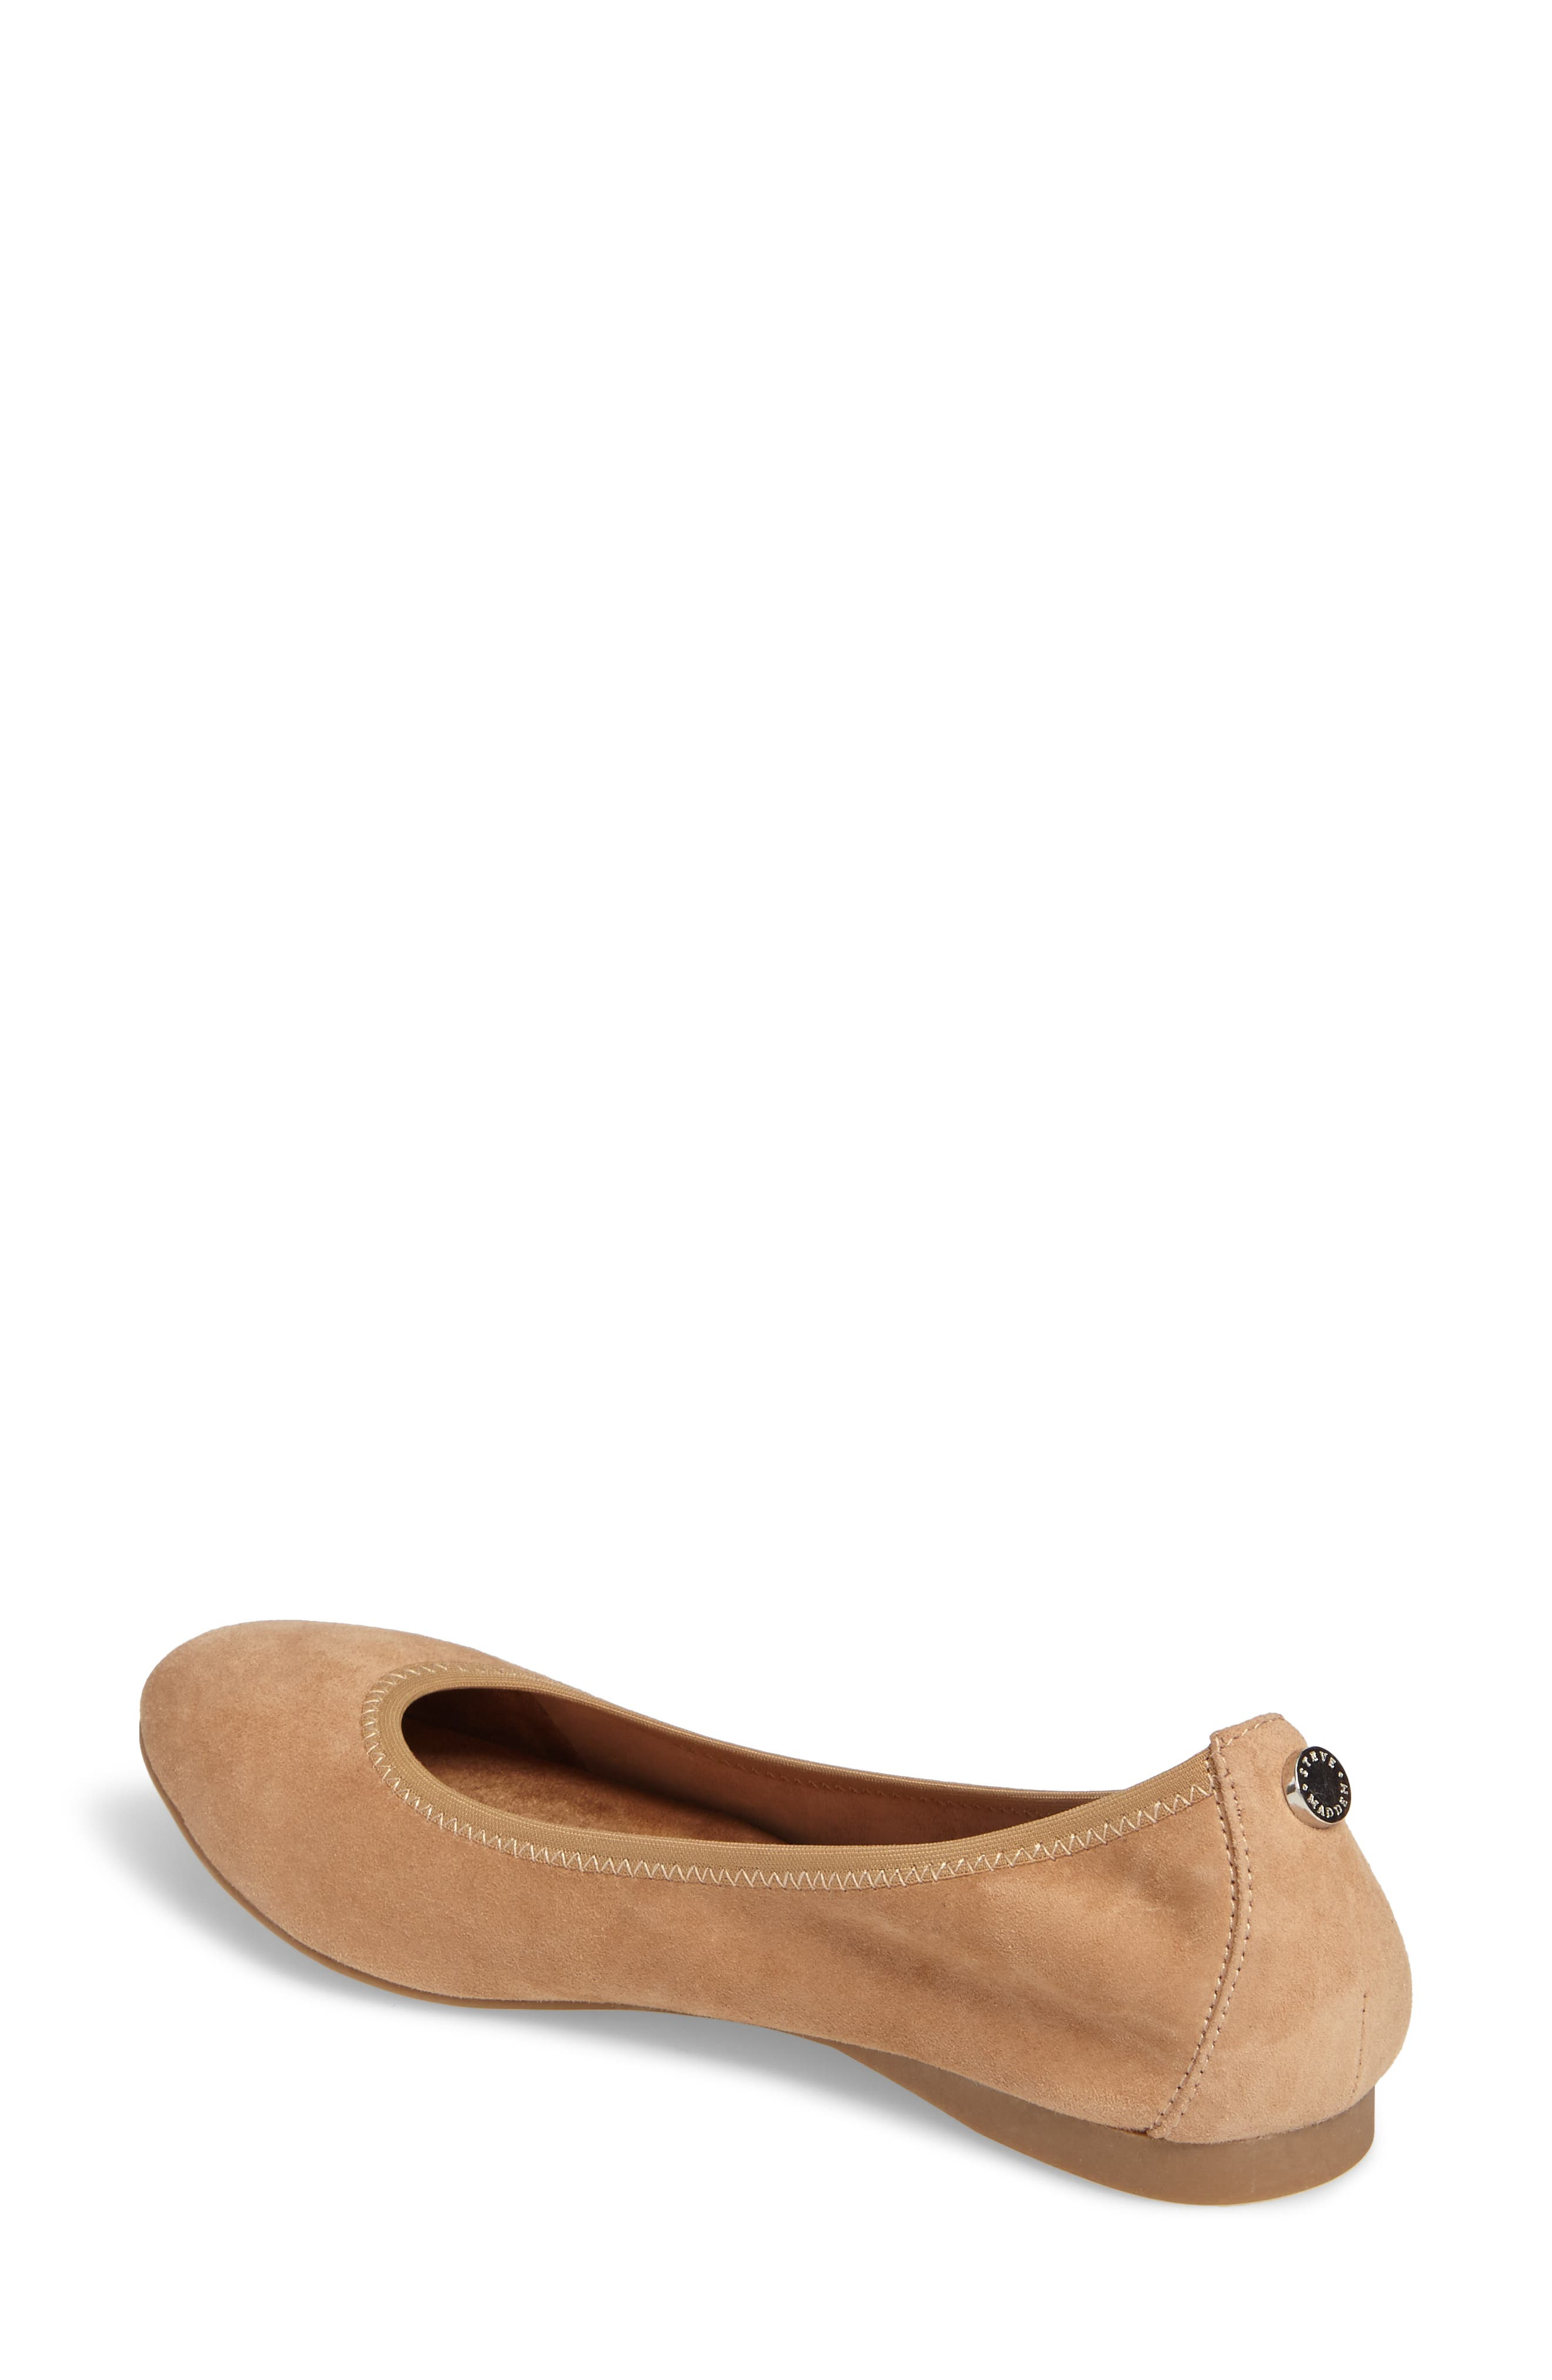 Alternate Image 2  - Steve Madden Bonnie Ballet Flat (Women)